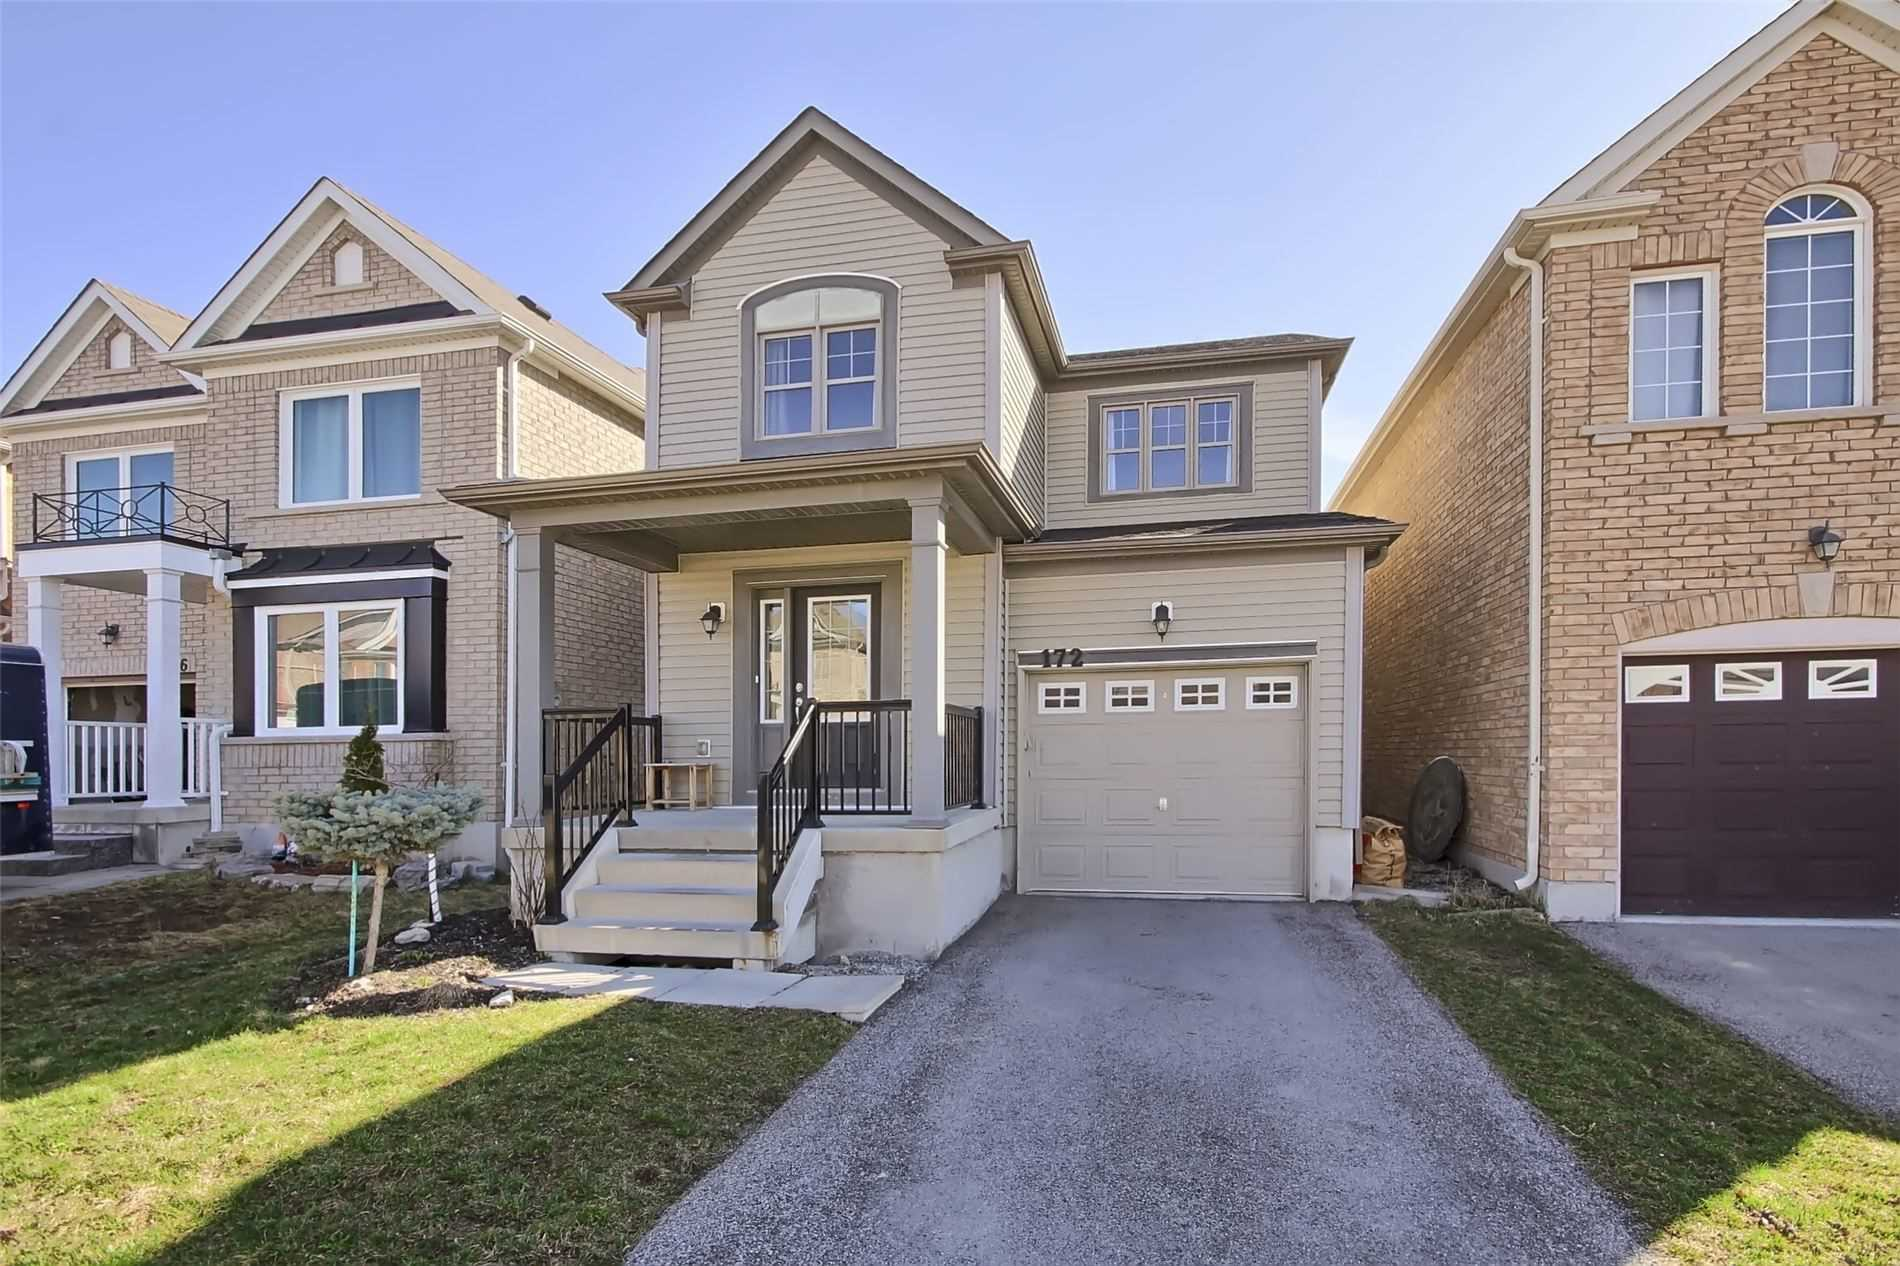 pictures of house for sale MLS: N4736459 located at 172 Webb St, Bradford West Gwillimbury L3Z0R1